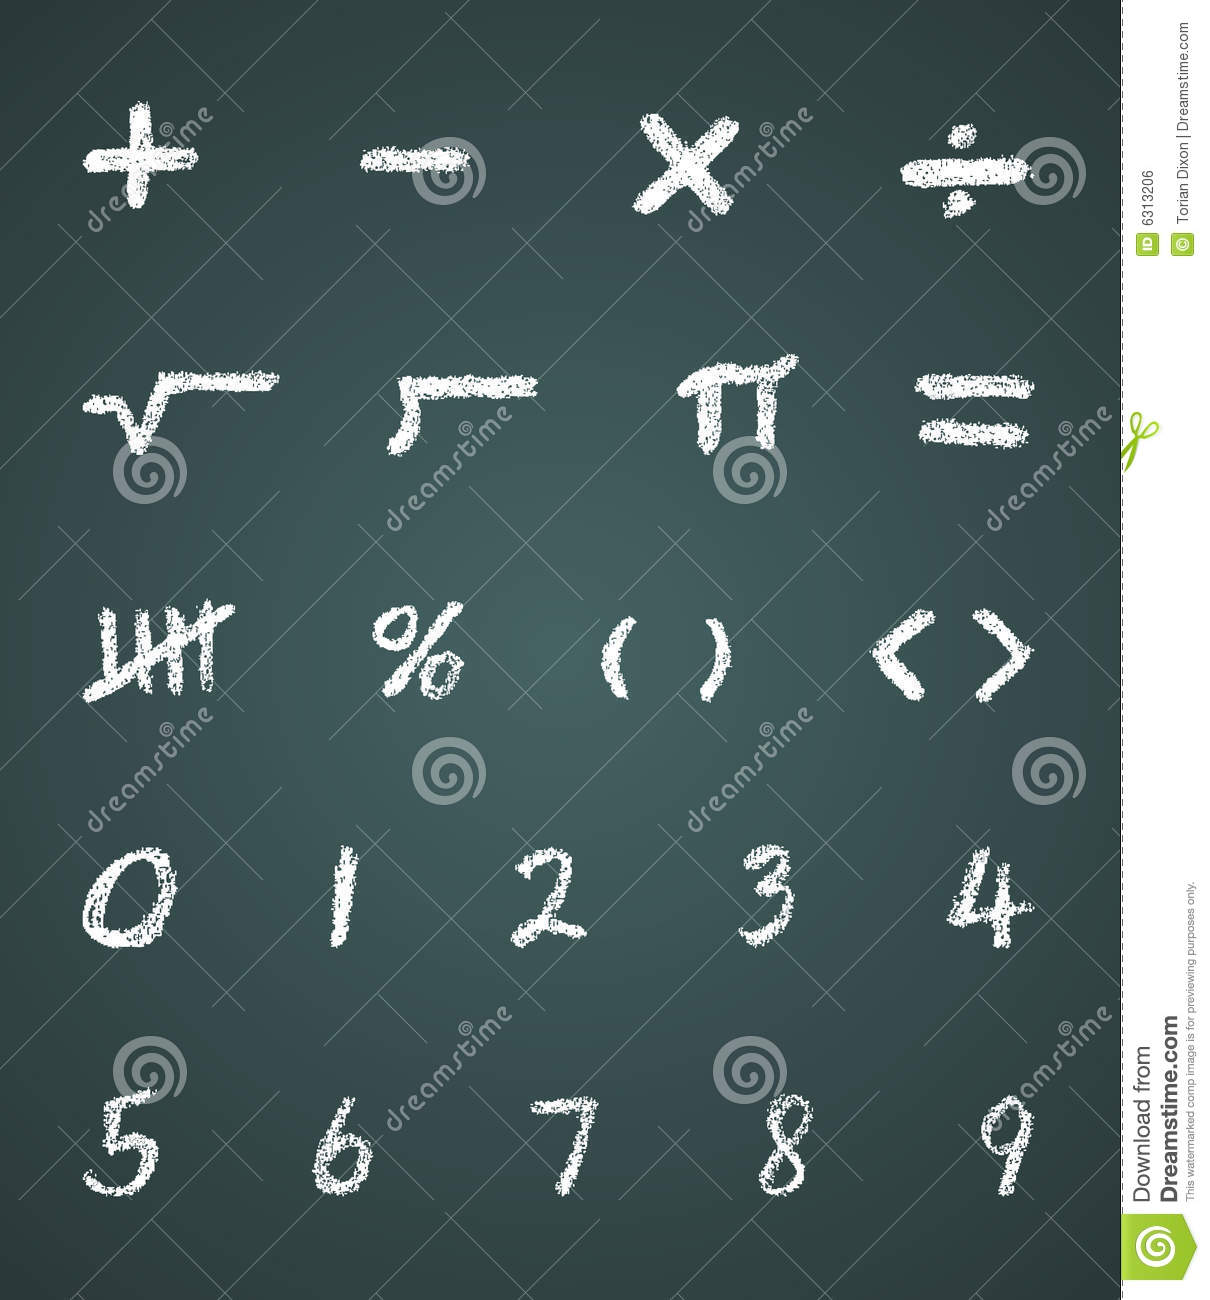 Chalk vector math symbols and numbers stock vector illustration chalk vector math symbols and numbers biocorpaavc